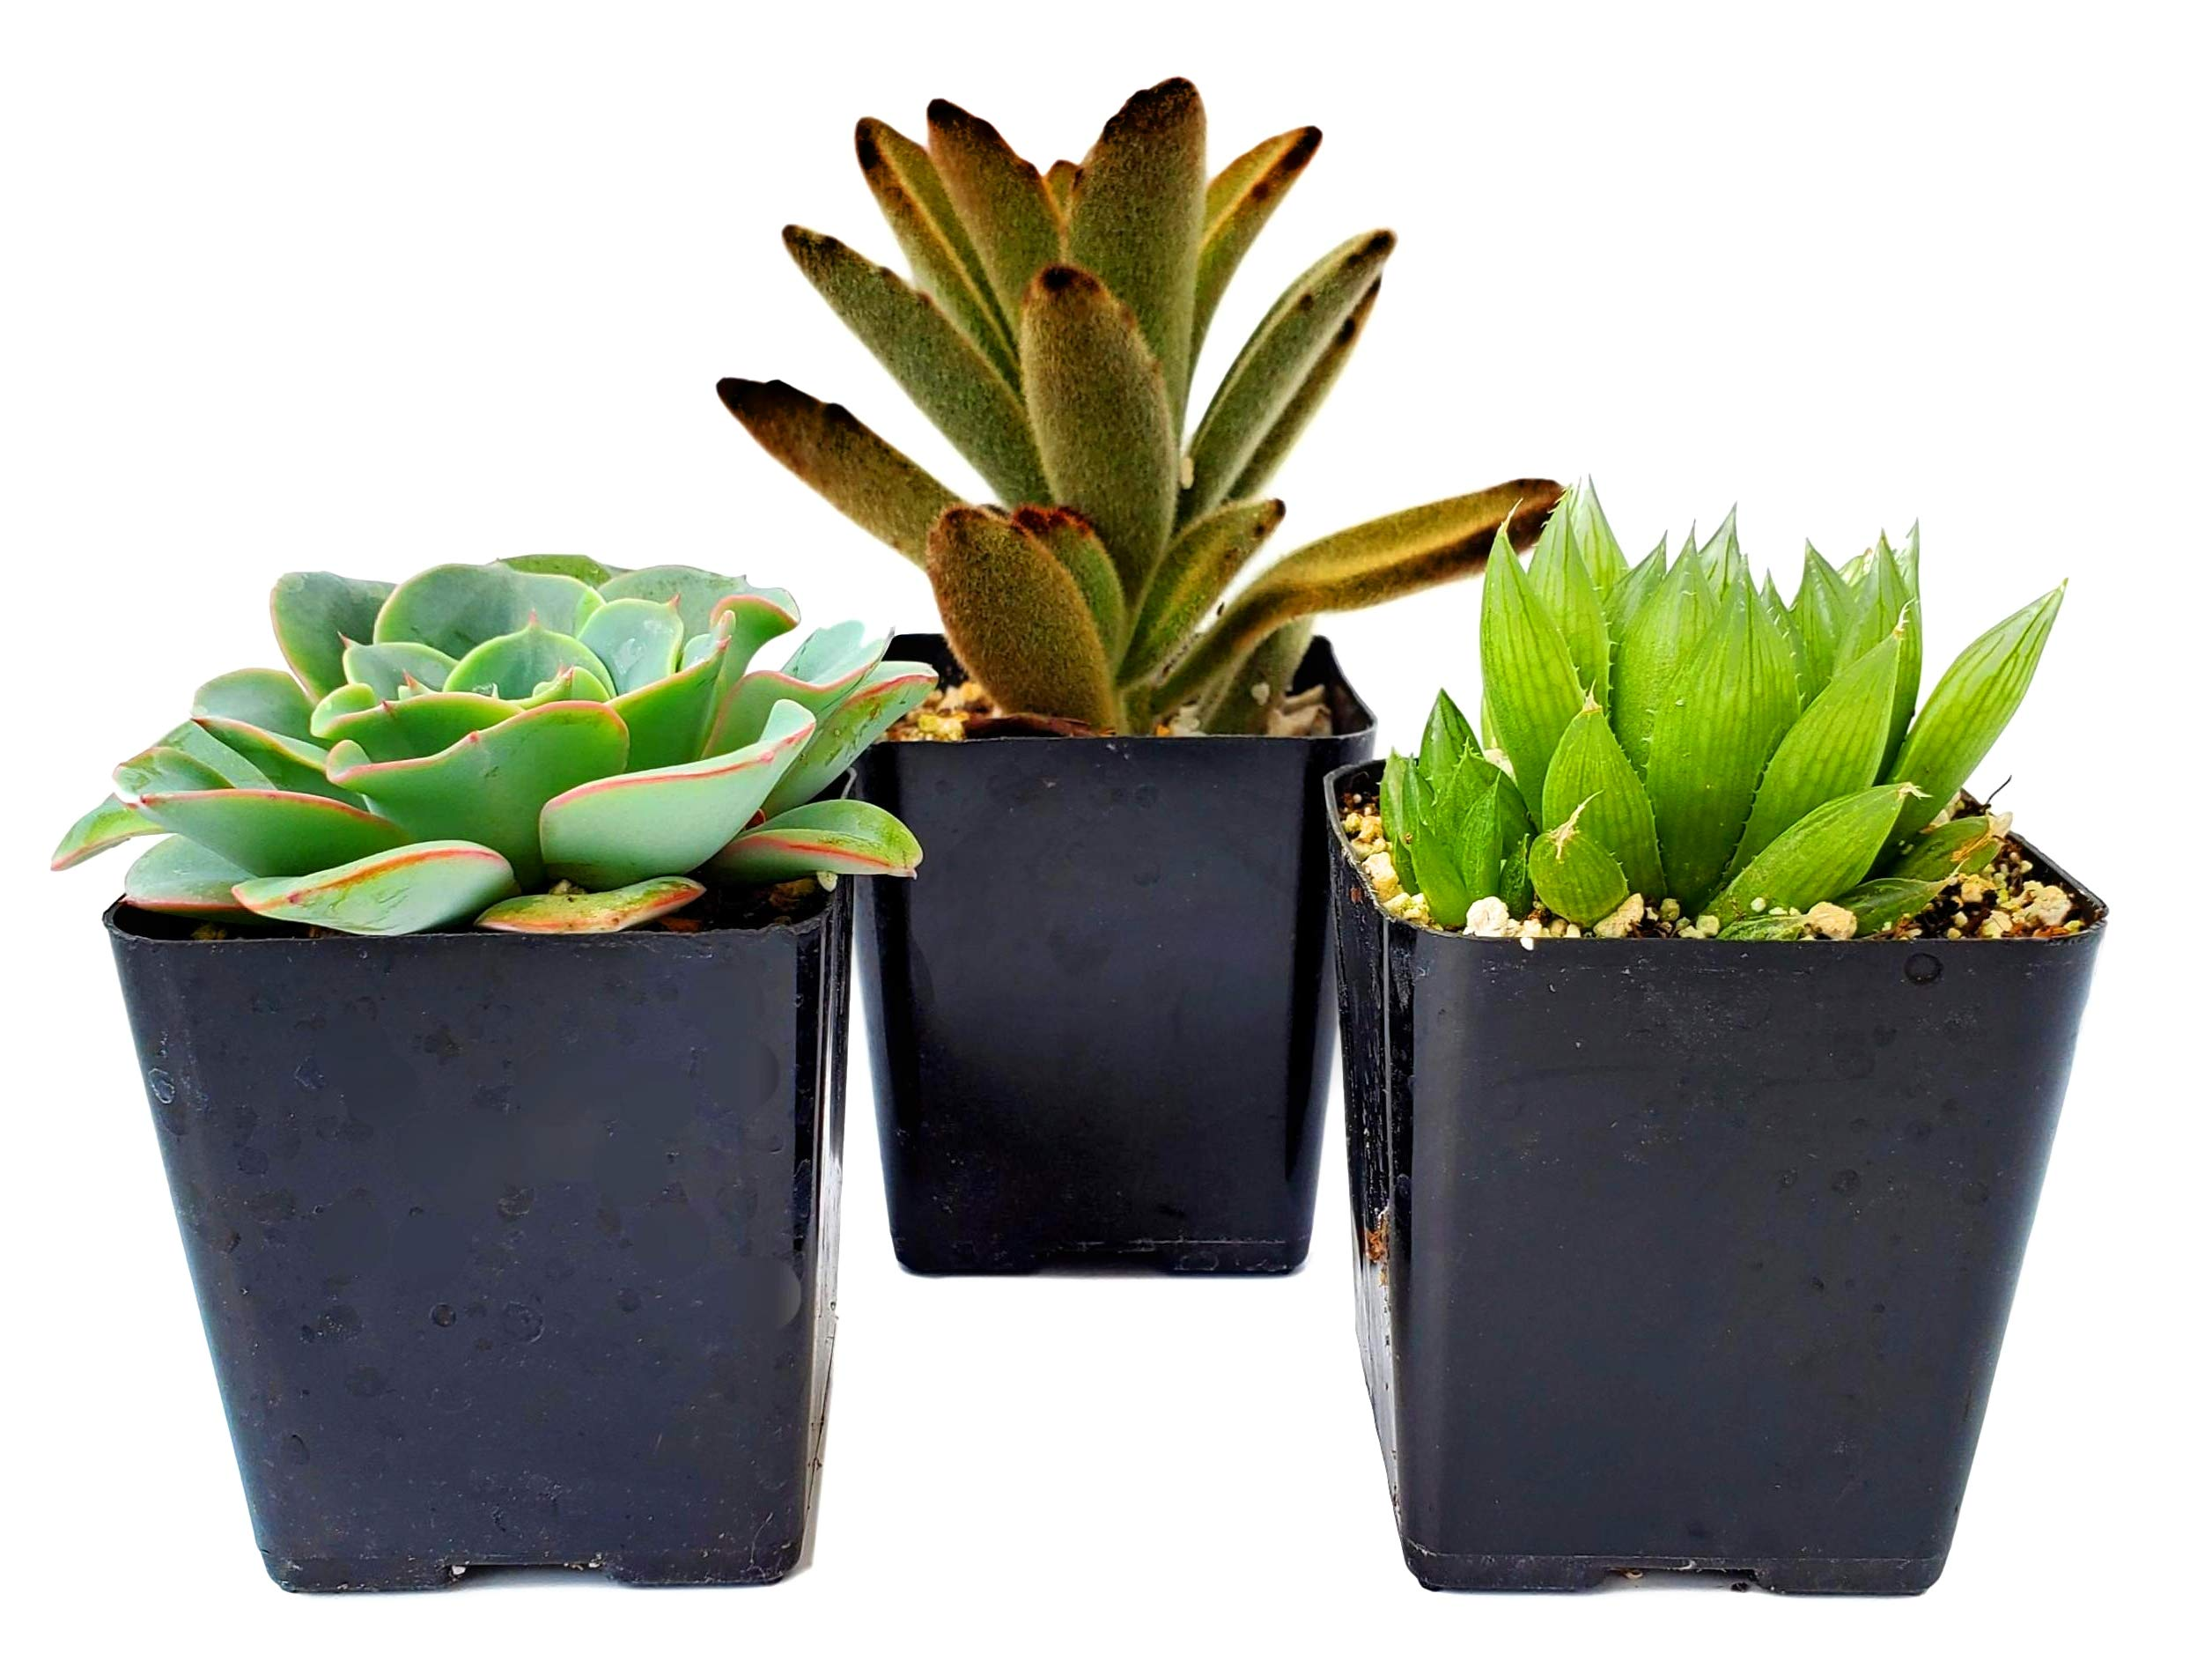 FATPLANTS Succulent Plants in Gift Box | Rooted in 2 inch Planter Pots with Soil | Living Indoor or Outdoor Plants | Home Decor, Gifts, Shower & Wedding Decorations (3) by Fat Plants San Diego